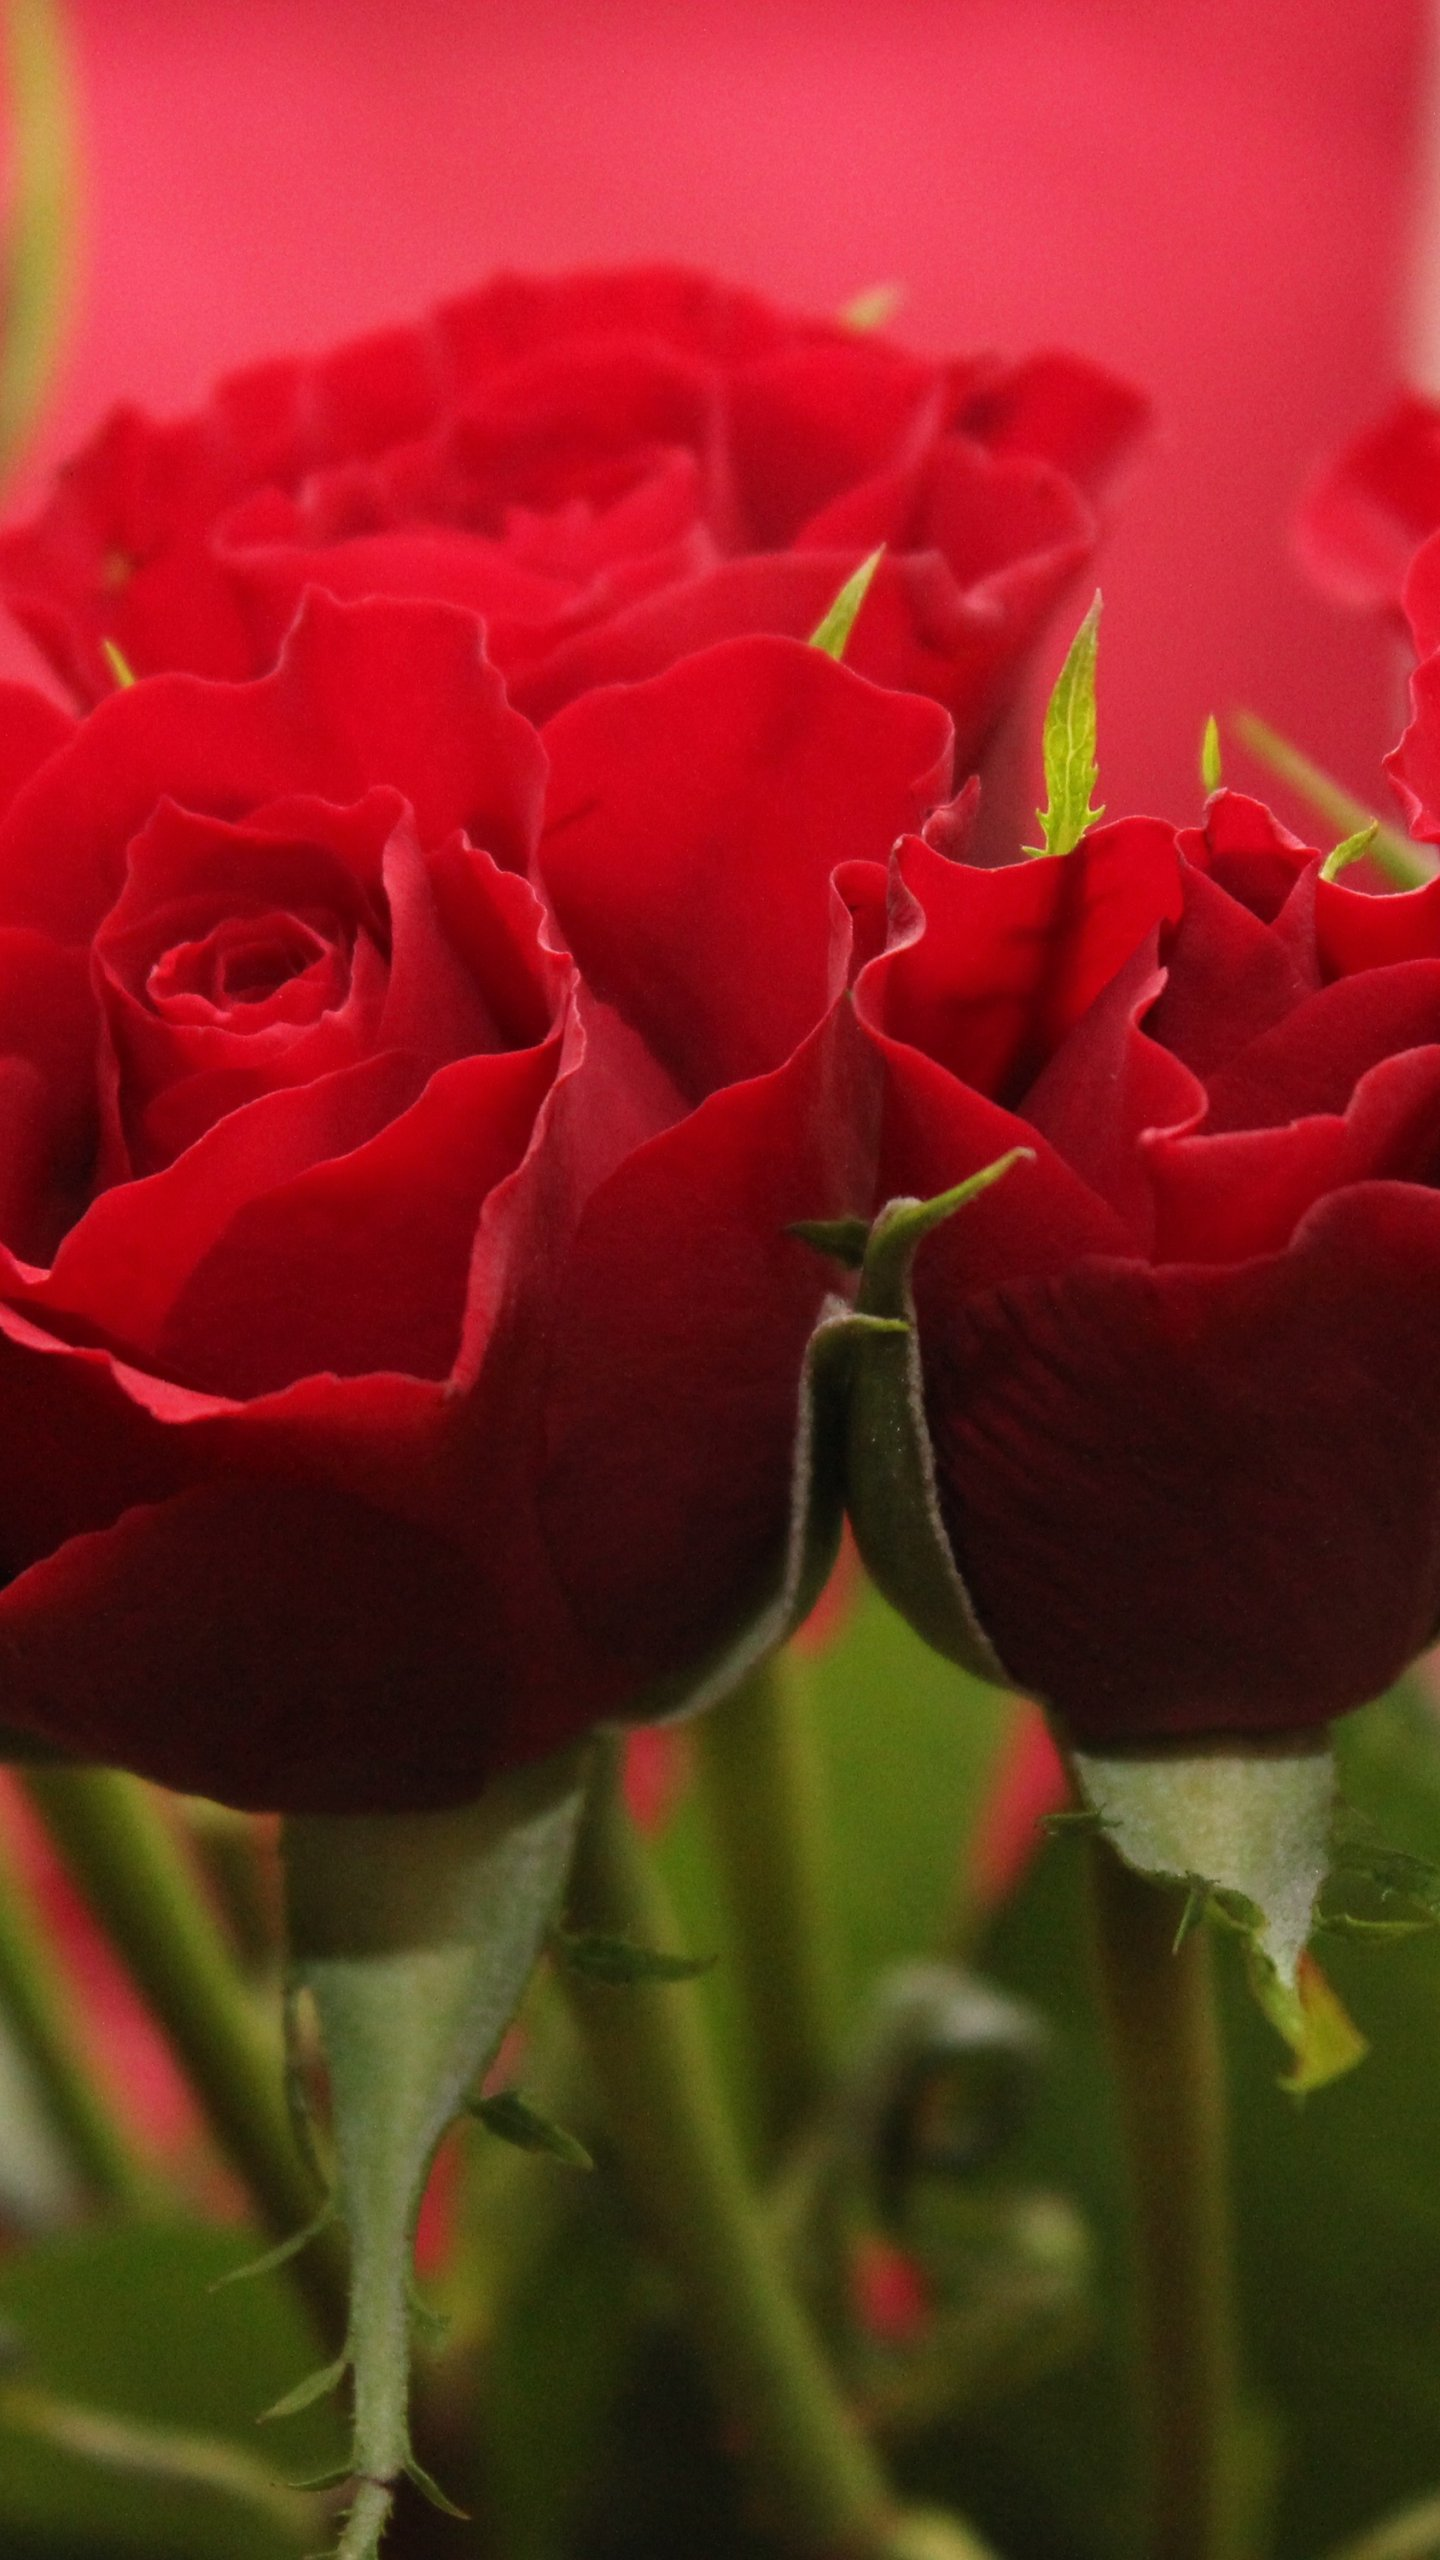 Red Roses Wallpapers Top Free Red Roses Backgrounds Wallpaperaccess